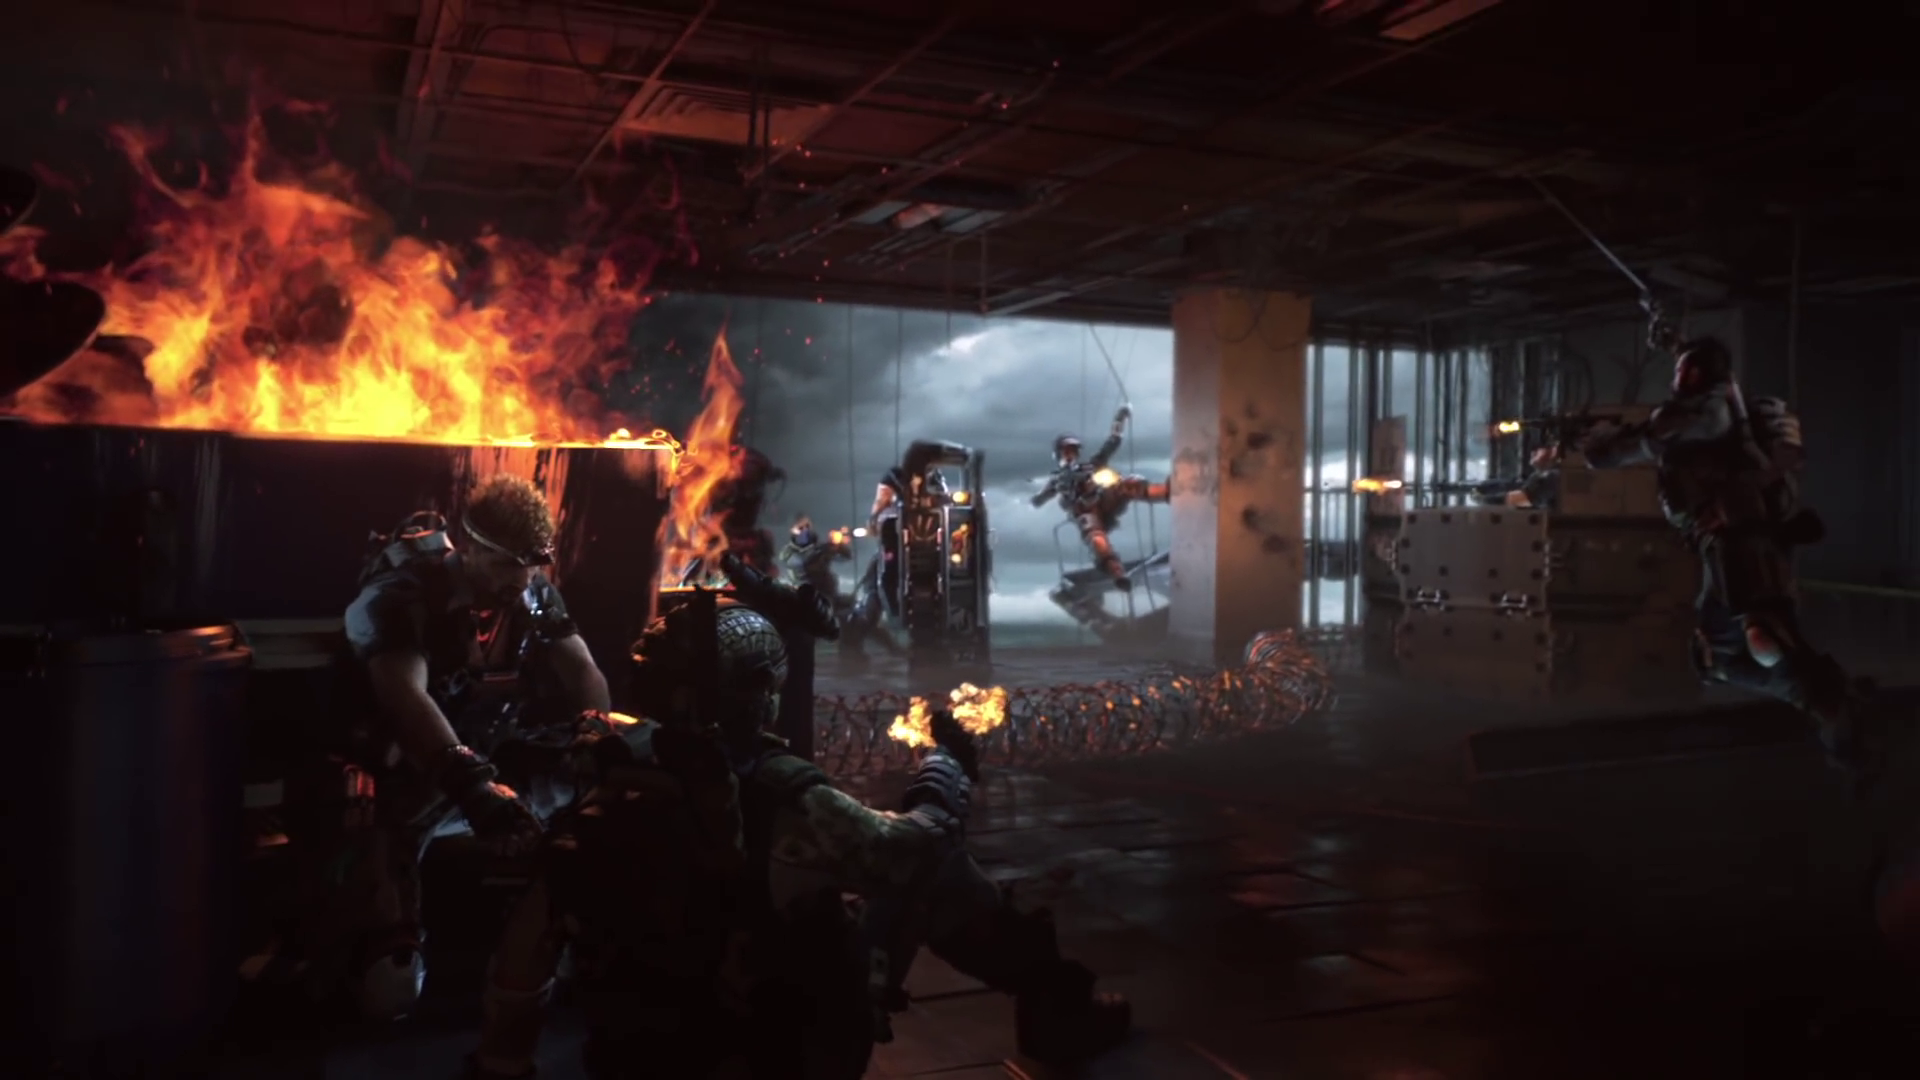 Call of Duty: Black Ops 4's answer to Fortnite is a new mode